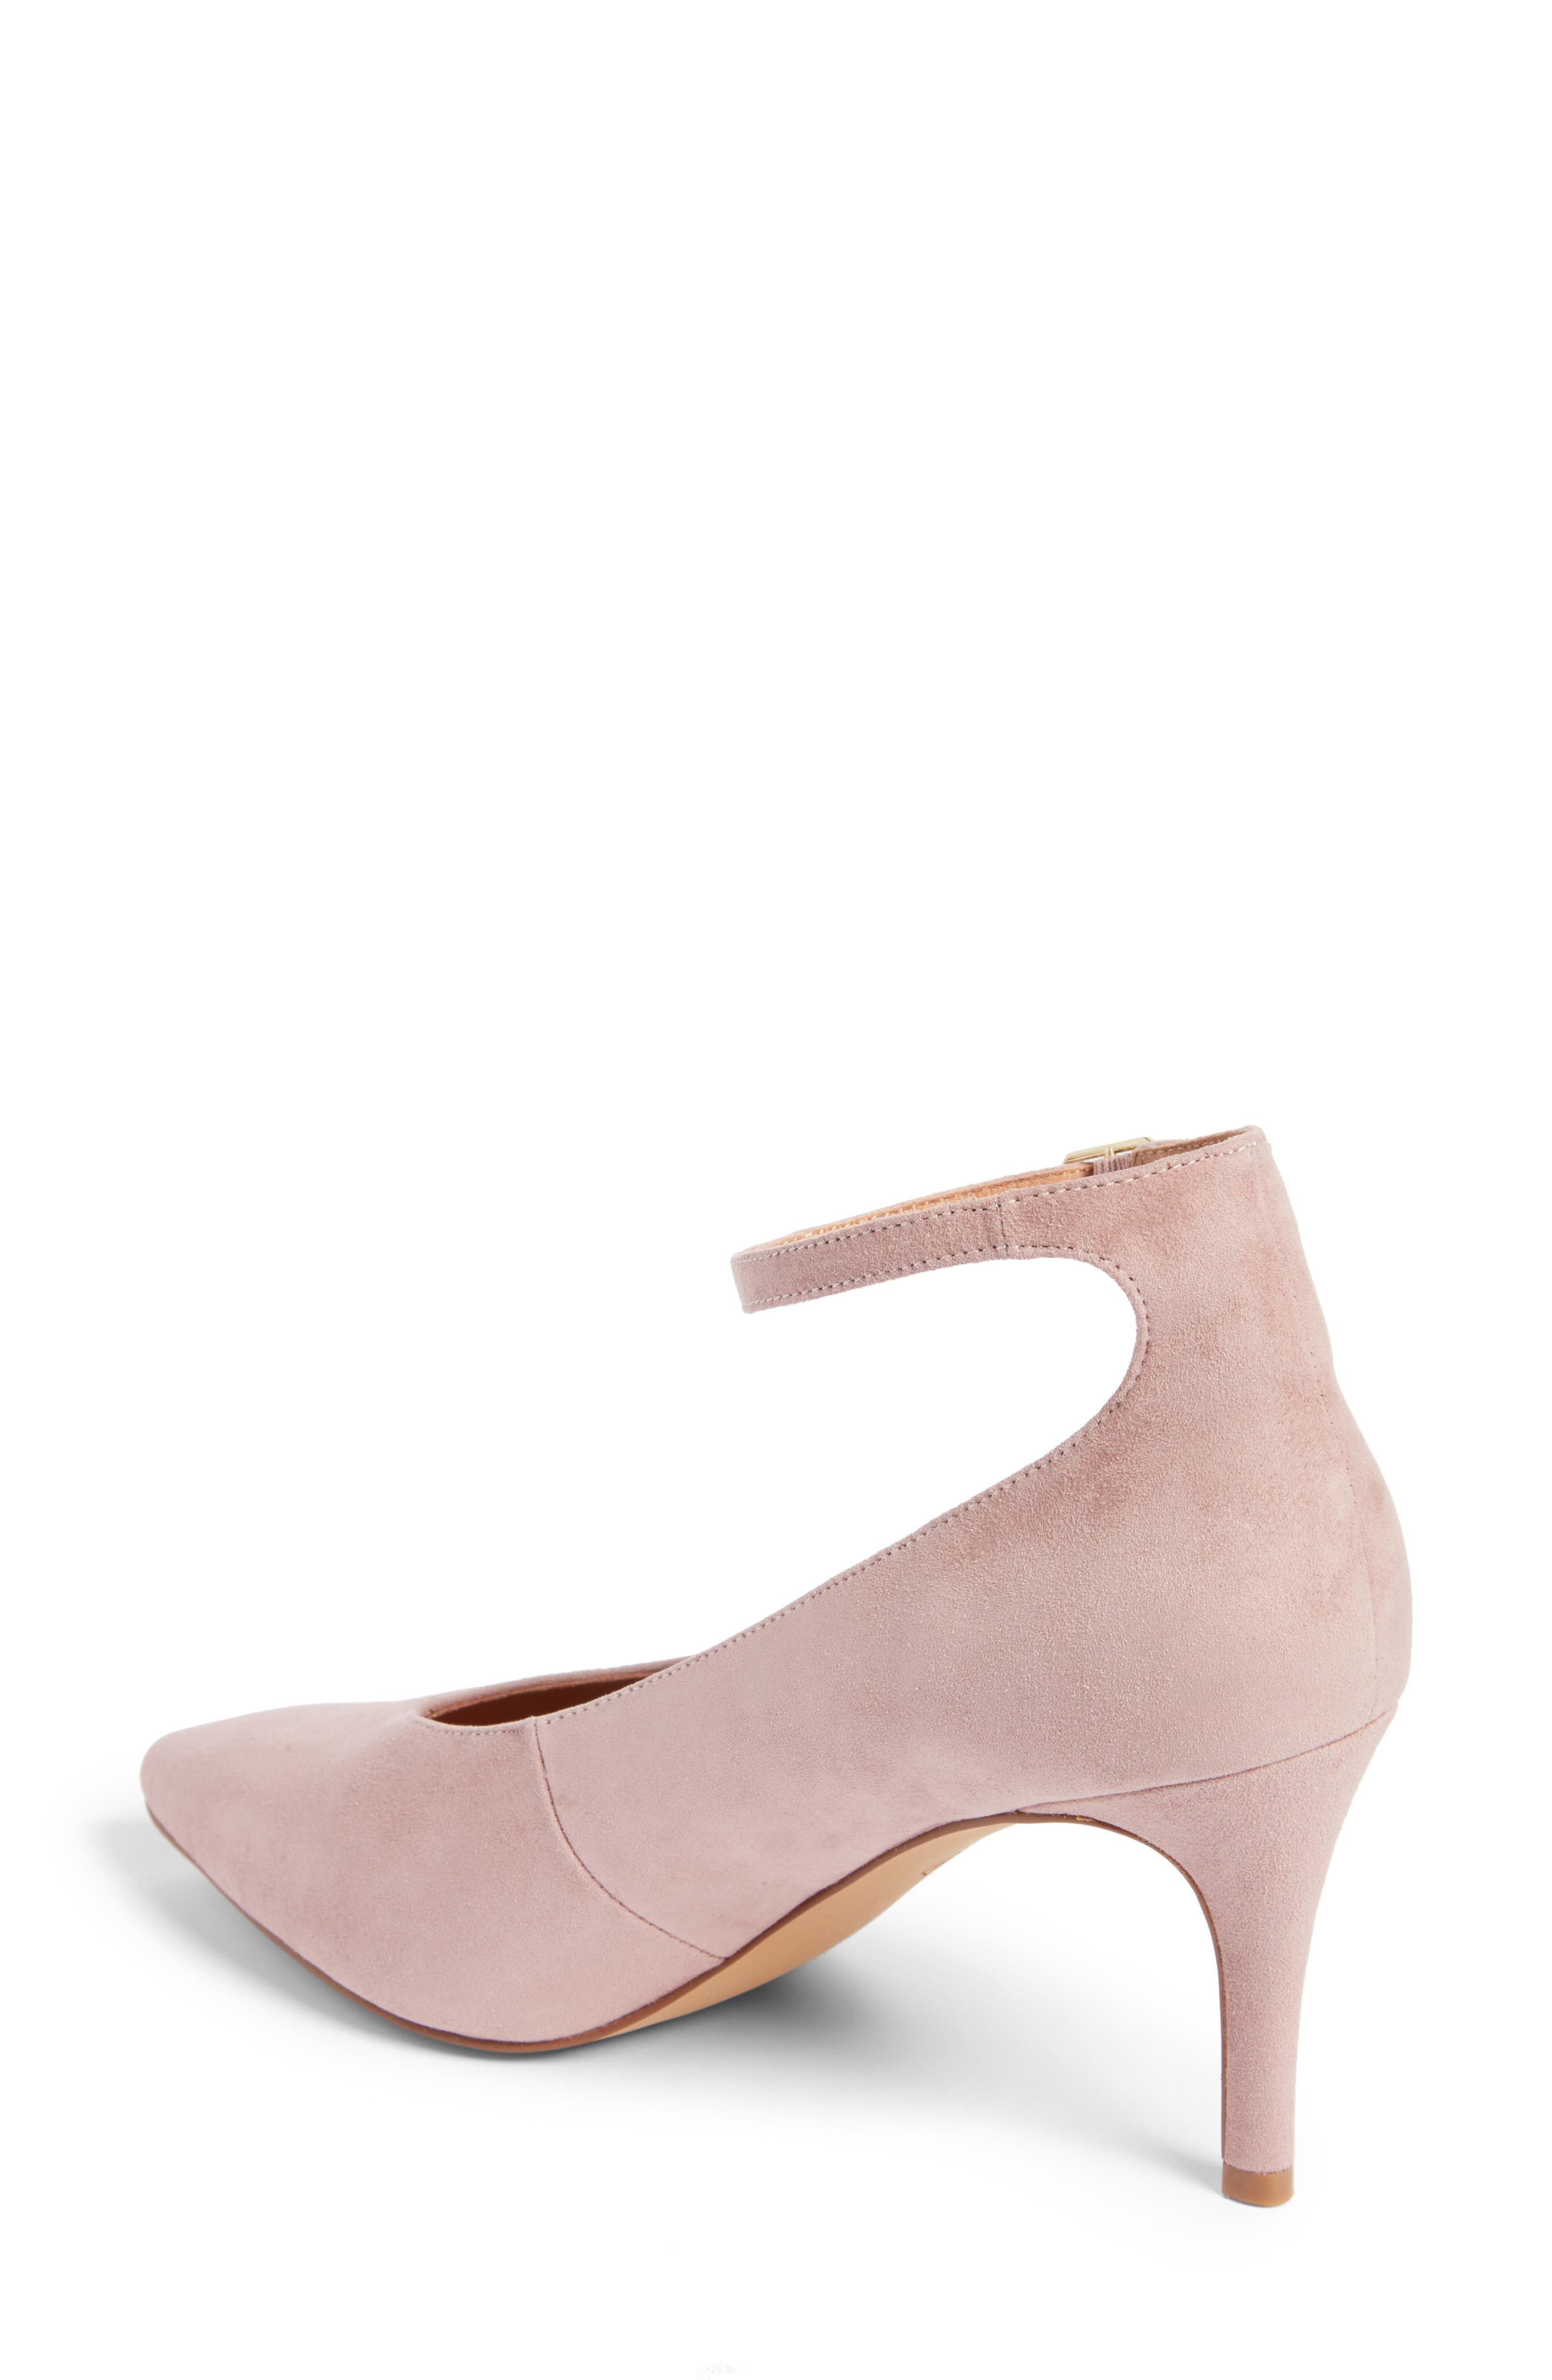 Azaela Ankle Strap Pump,                             Alternate thumbnail 3, color,                             Dark Pink Suede